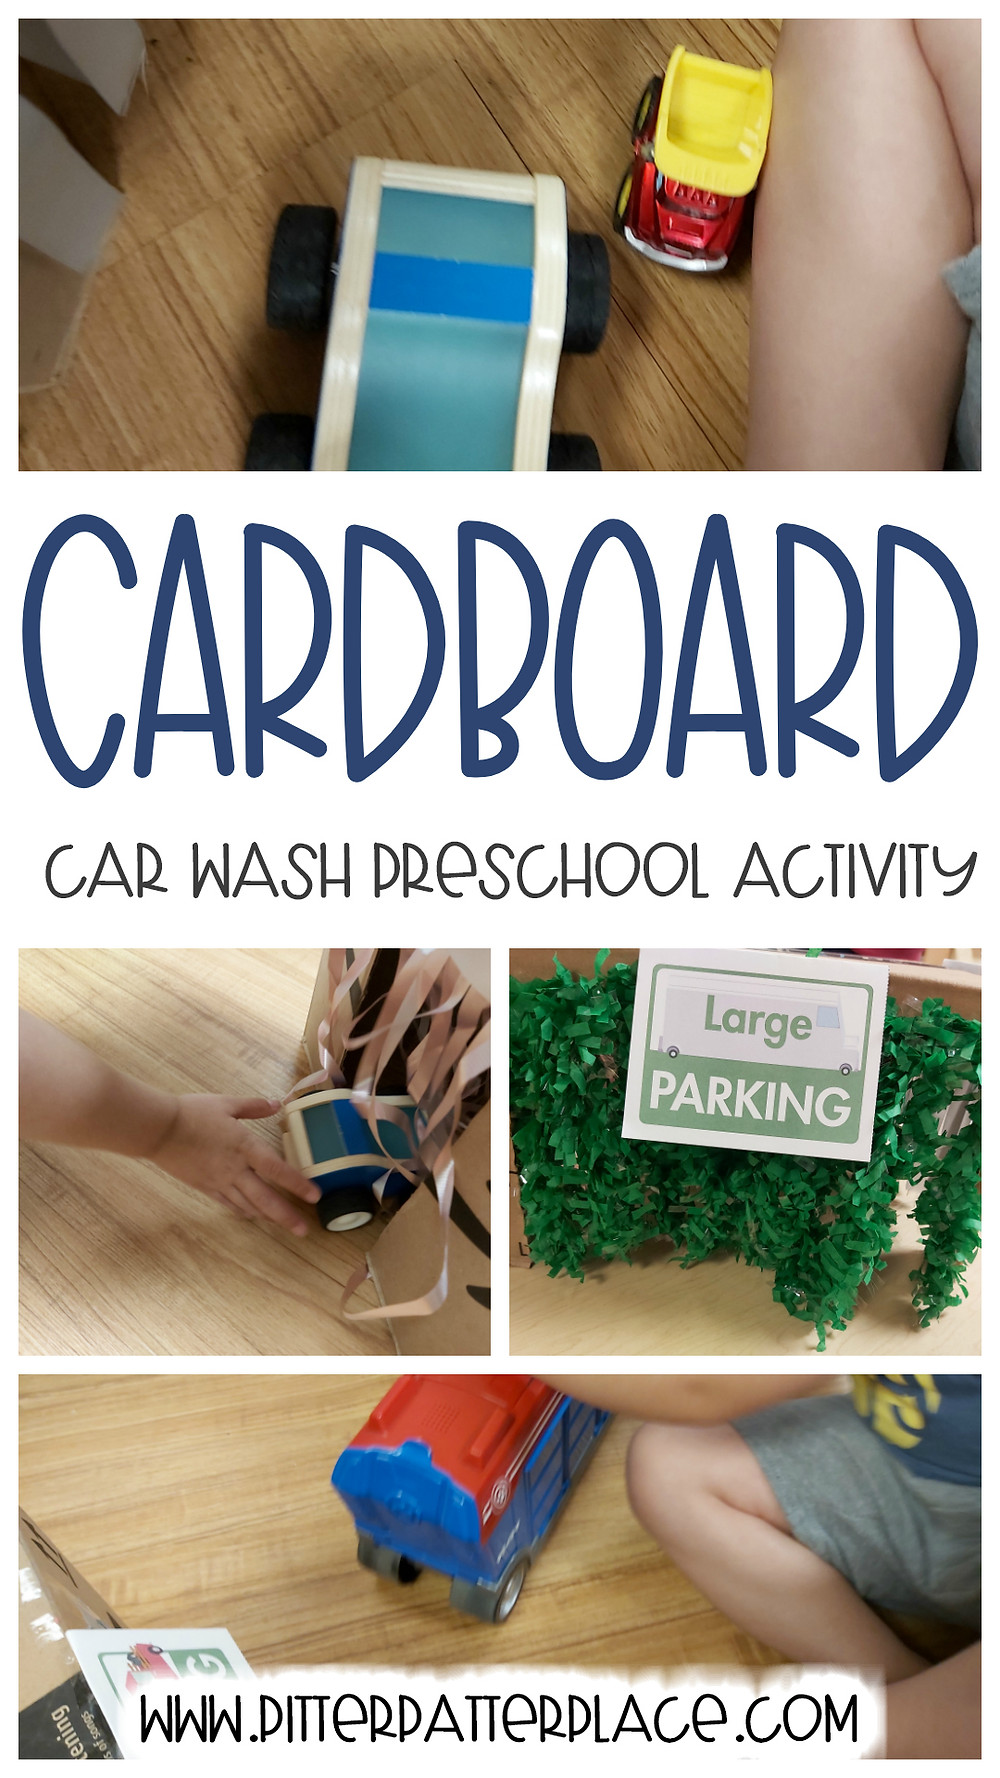 collage of cardboard carwash pictures with text: Cardboard Car Wash Preschool Activity